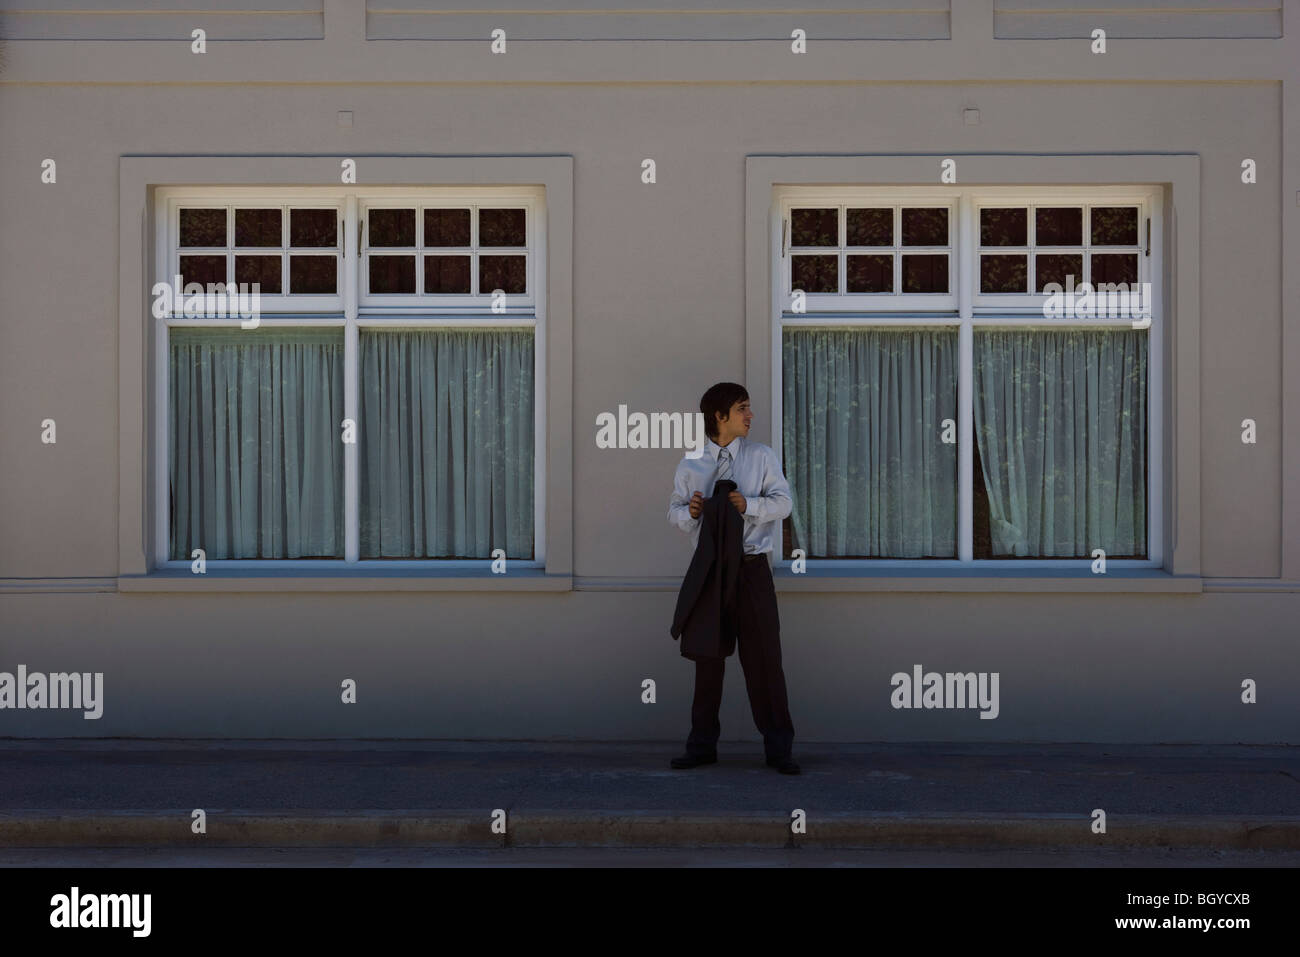 Young man standing on sidewalk, looking over shoulder - Stock Image